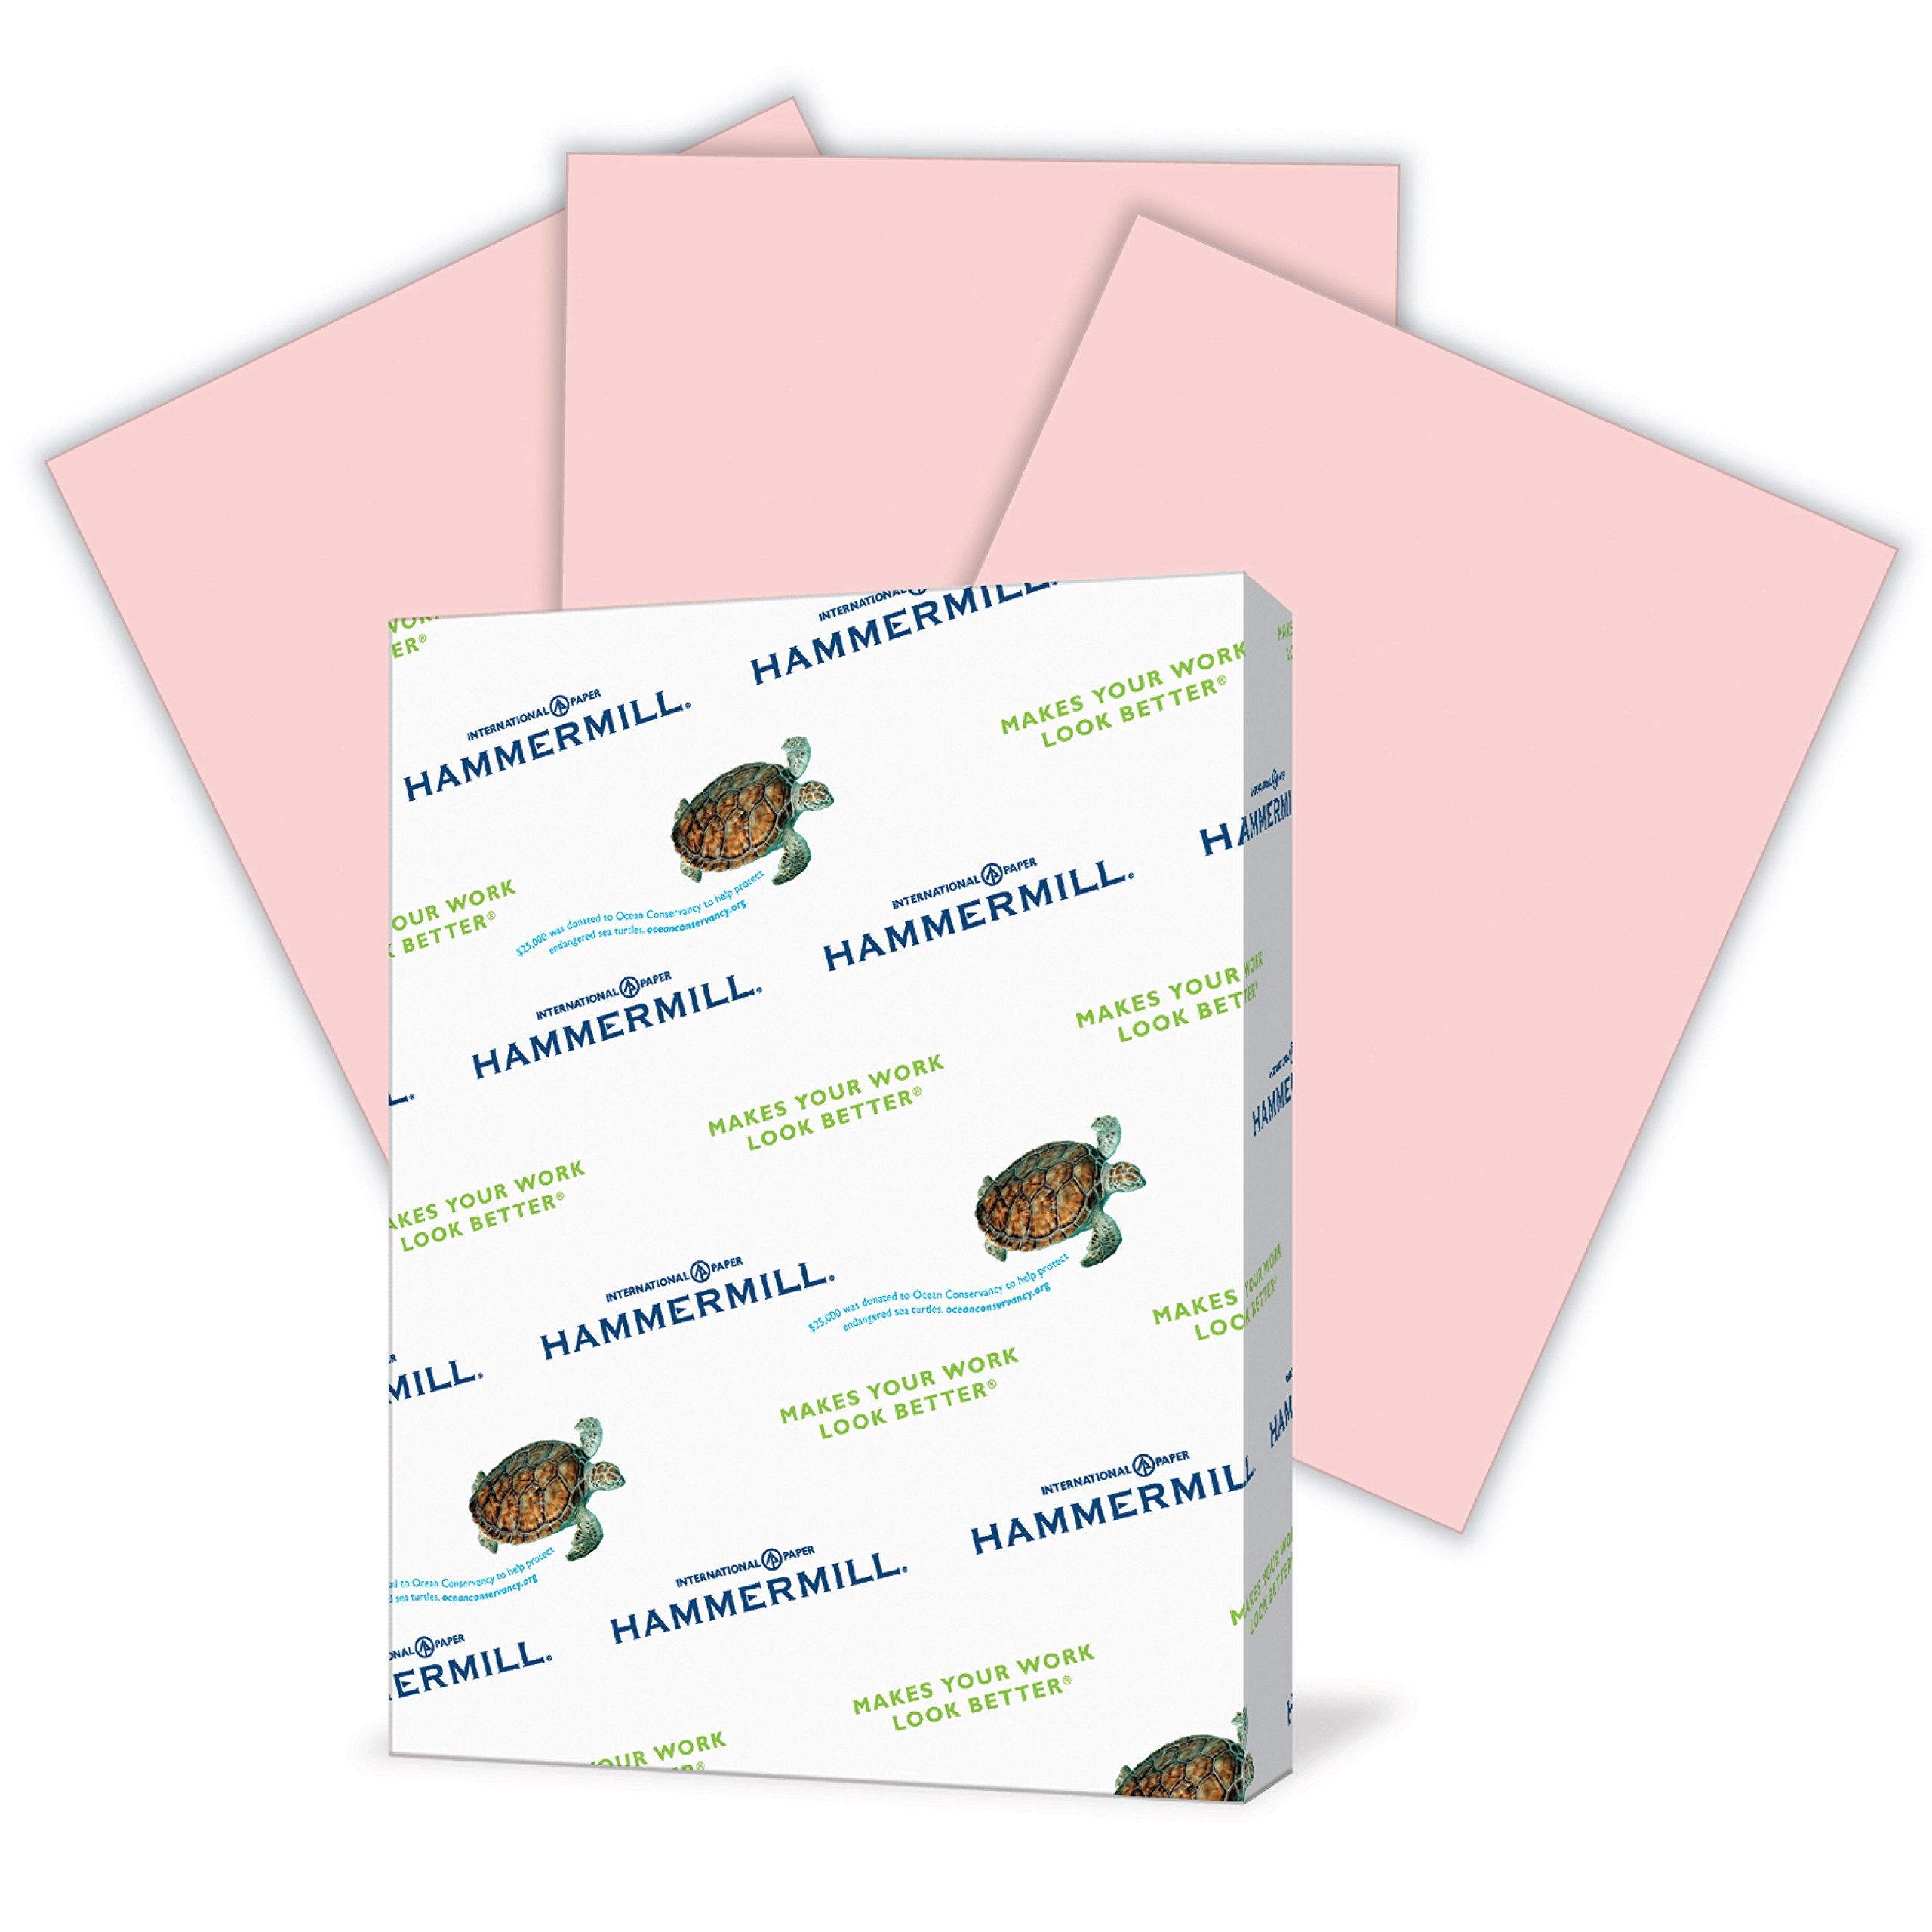 Hammermill Colored Paper, Pink Printer Paper, 20lb, 8.5x11 Paper, Letter Size, 500 Sheets / 1 Ream, Pastel Paper, Colorful Paper (103282R)